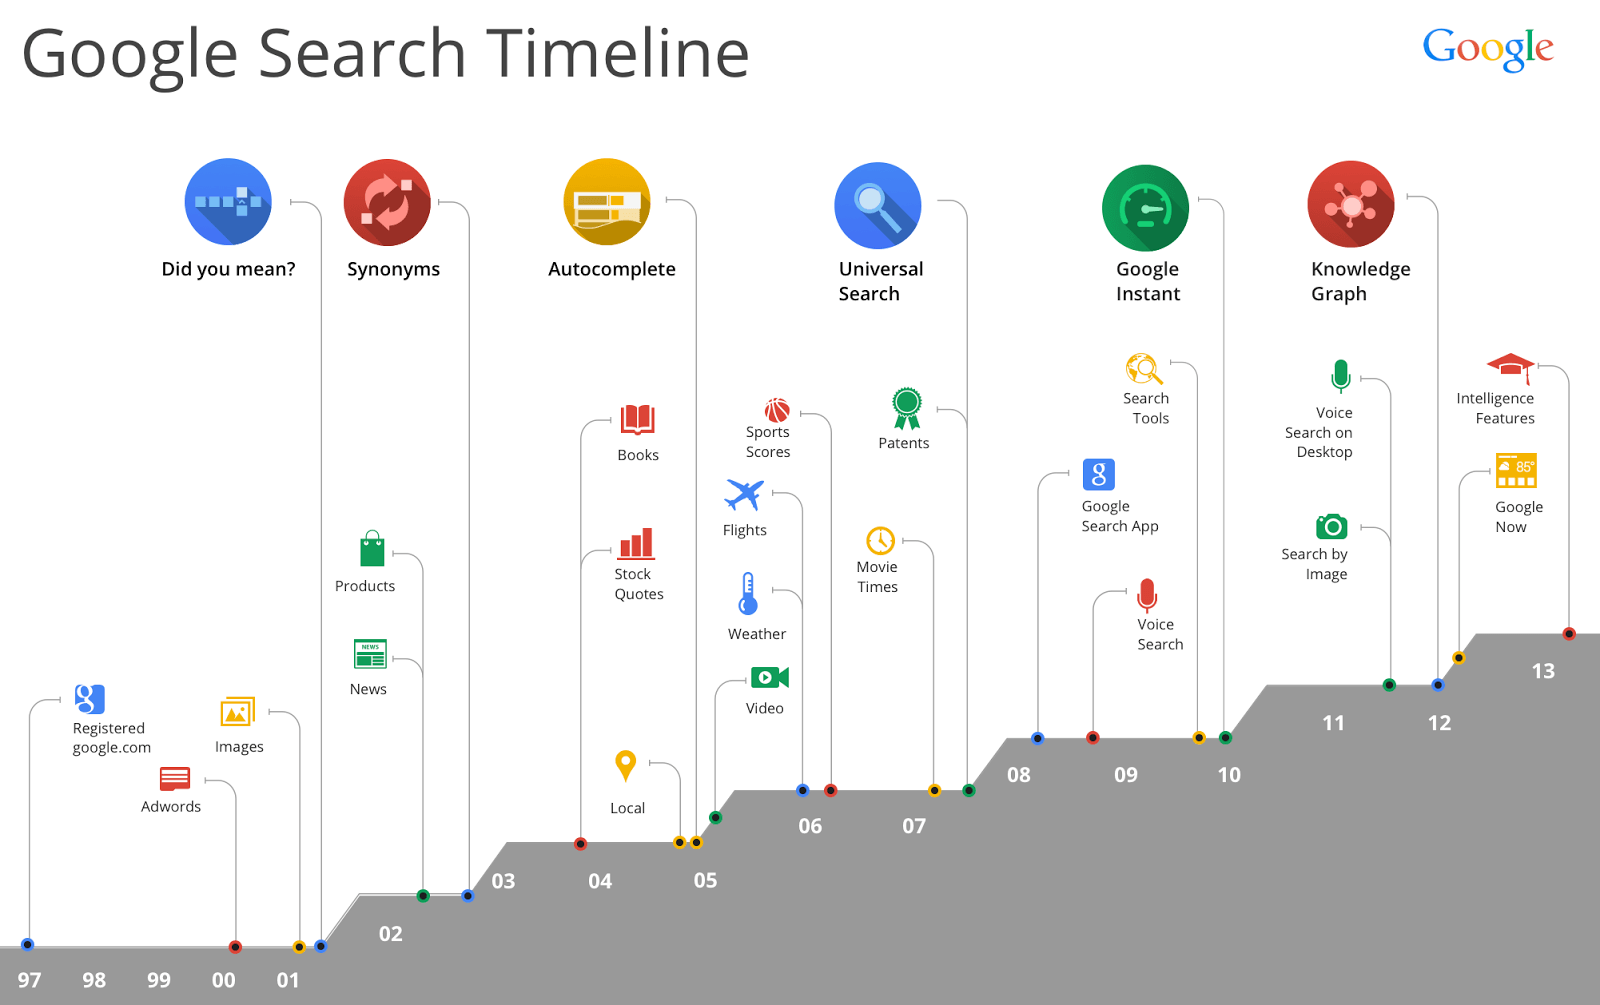 ApacheLeads-Google-Search-History-Timeline-from-1997-2013-infographic